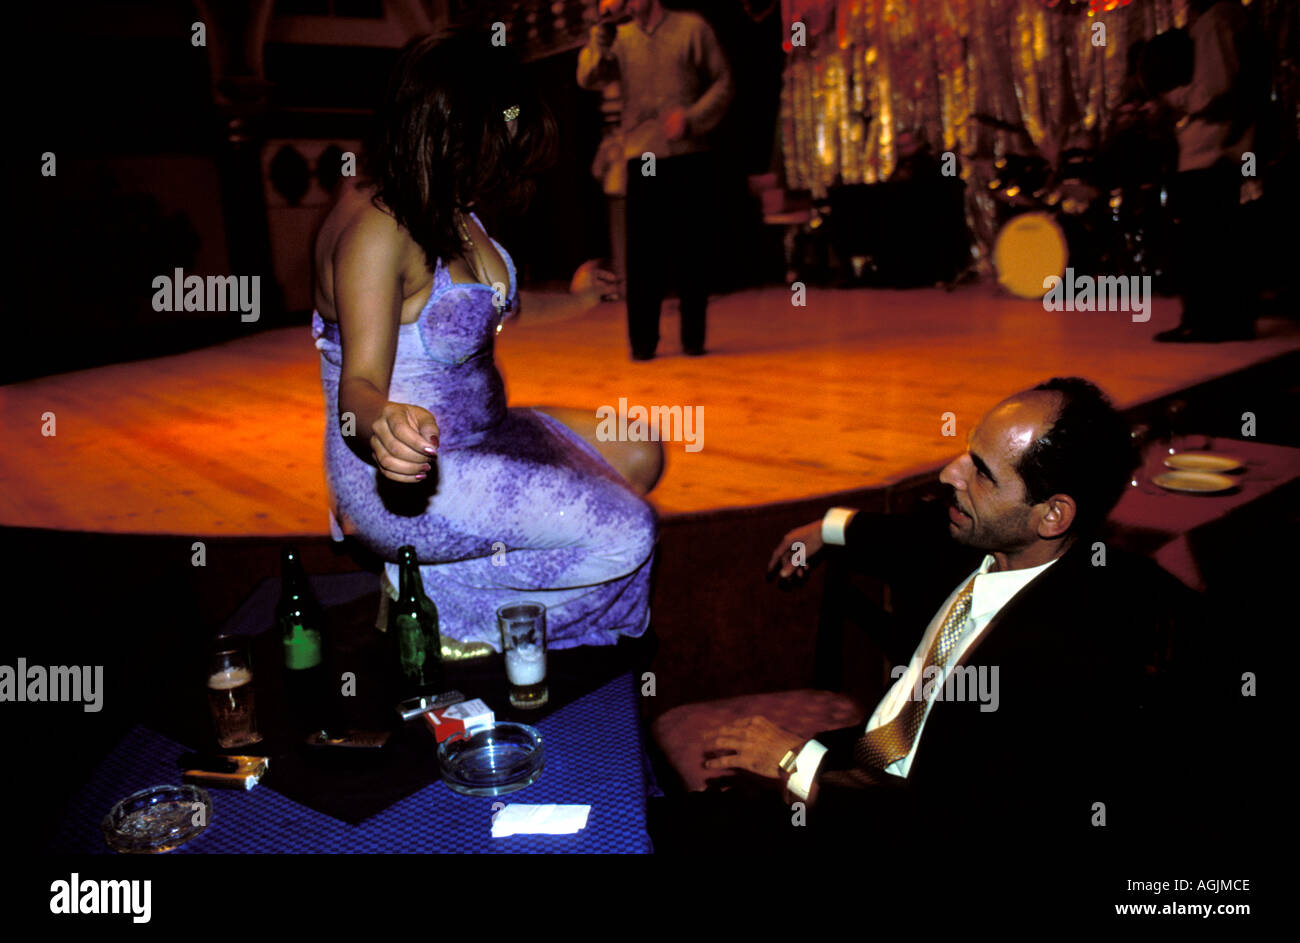 Cairo Belly Dancer In A Nightclub Dancing On The Table Of A Customer